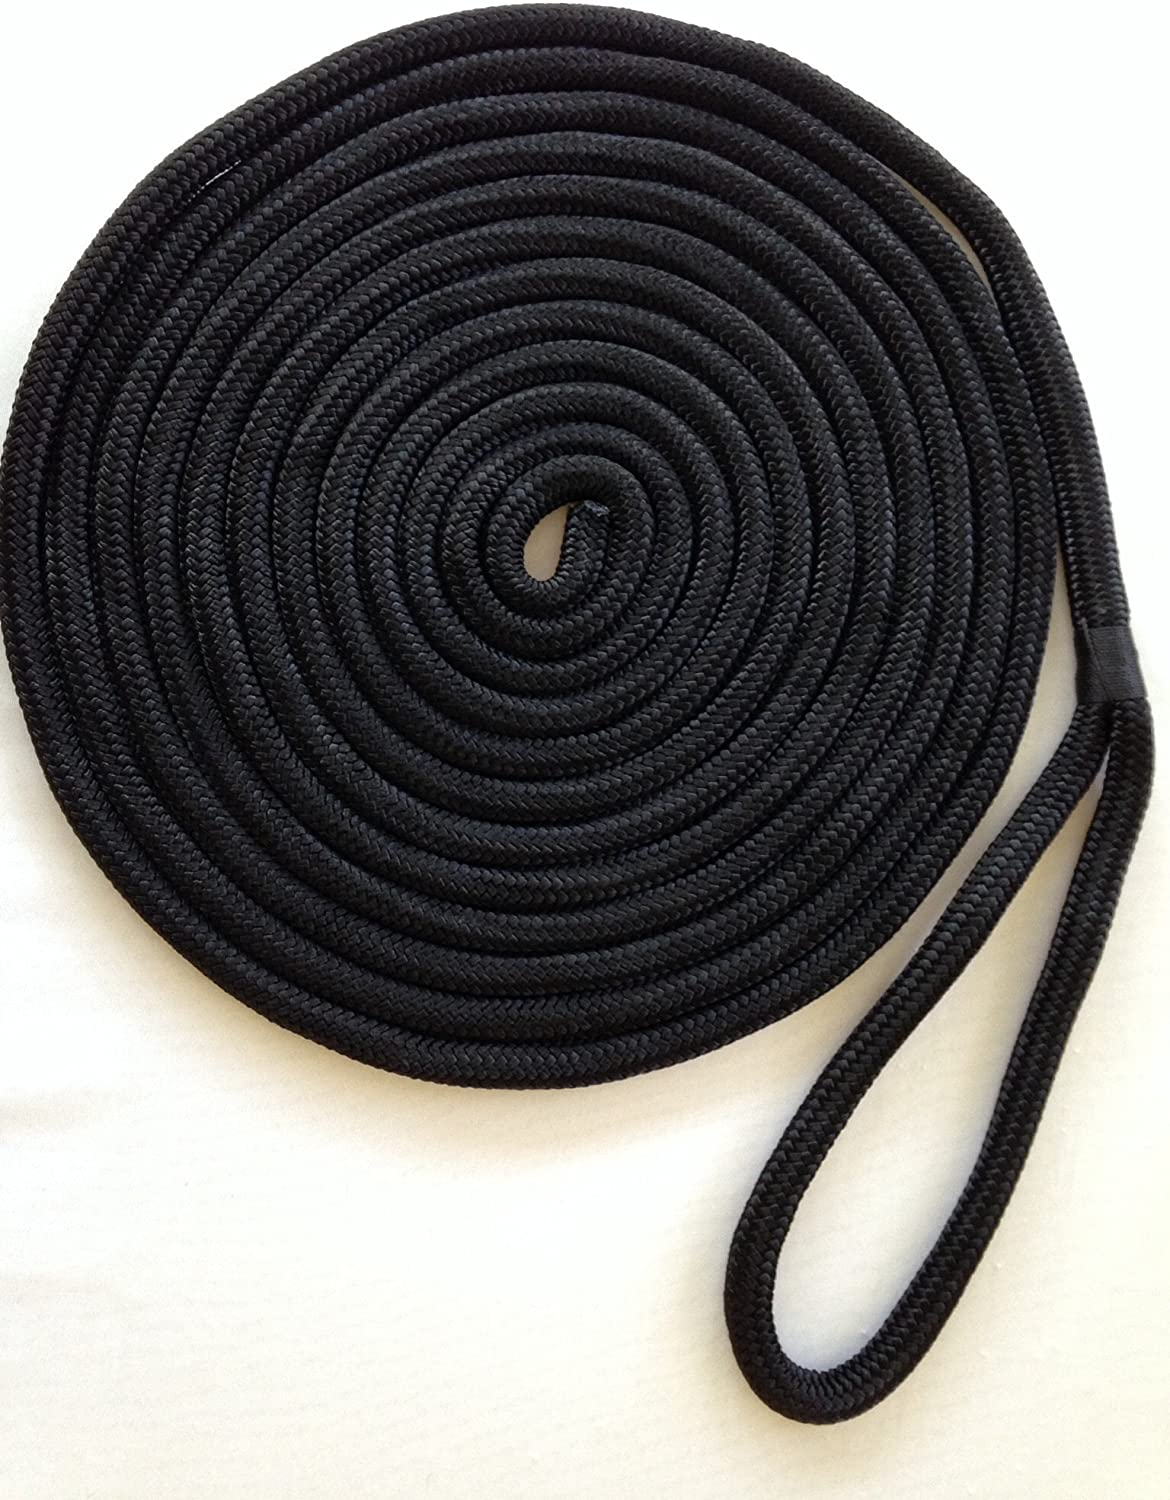 2021 Direct store model 5 8 Inch by 35 Feet Nylon Double Braid Dock Rope Line